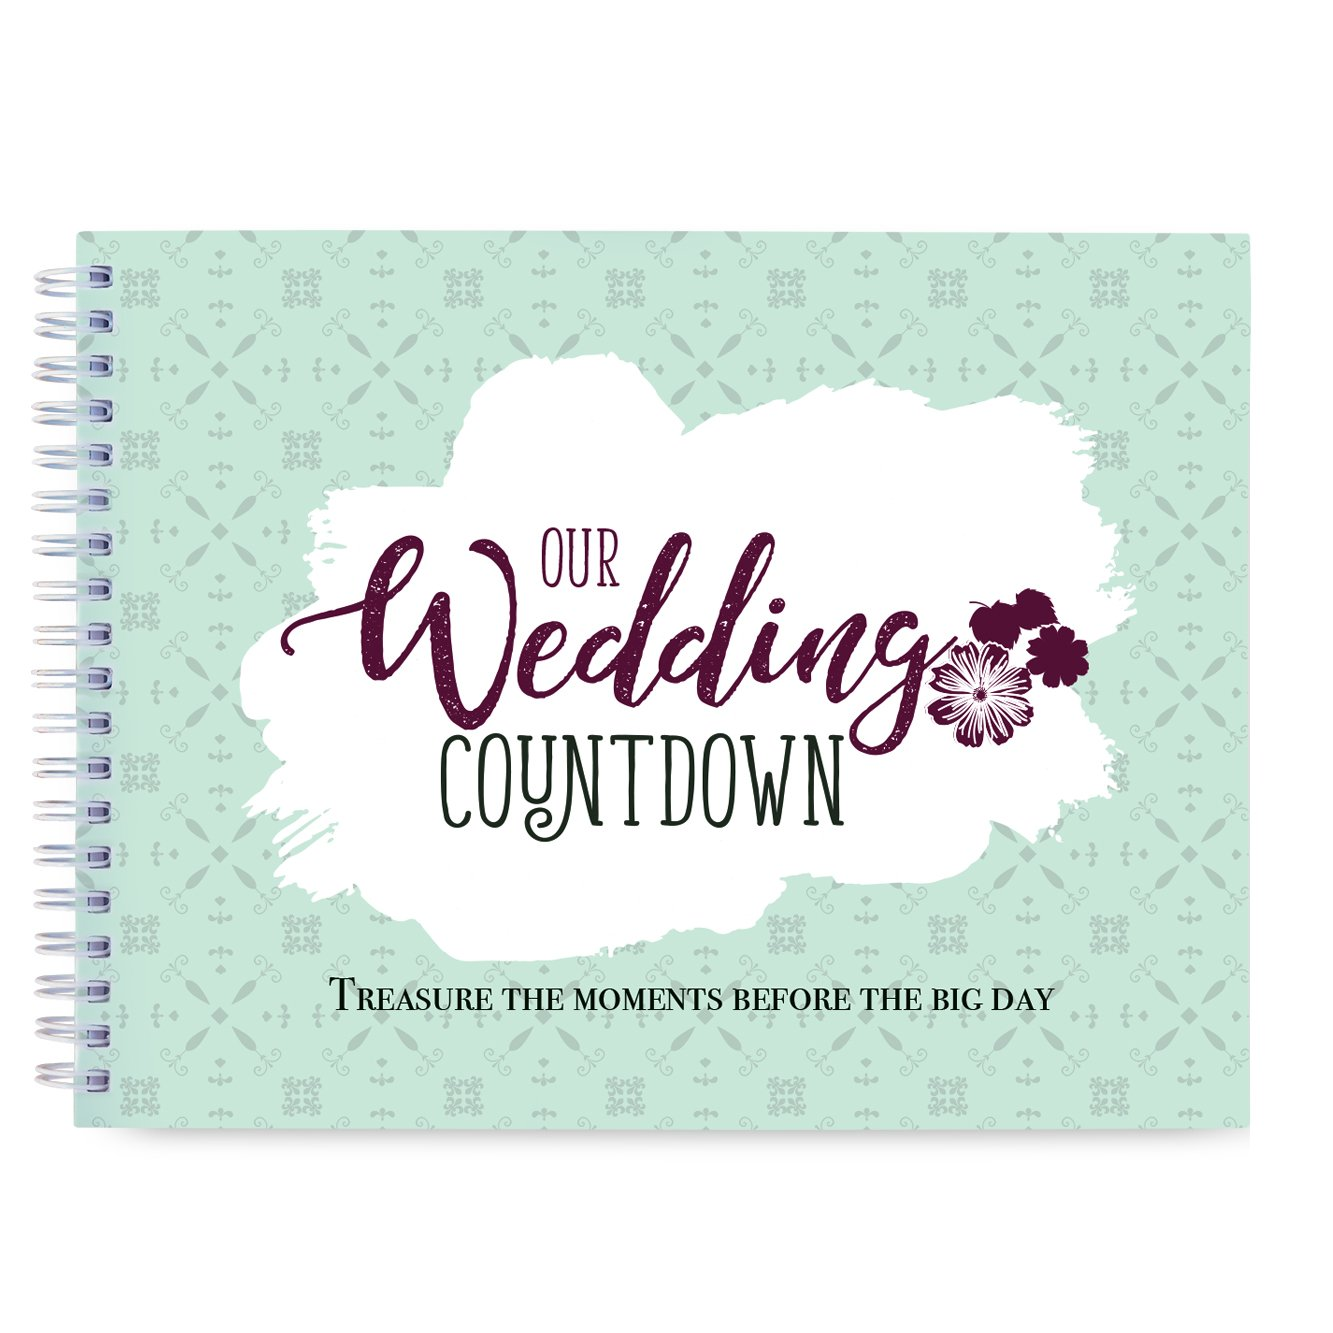 What A Choice Wedding Countdown Book Photo Album To Record Memories Before The Big Day Bride Planner Organizer Wedding Checklist Bridal Shower